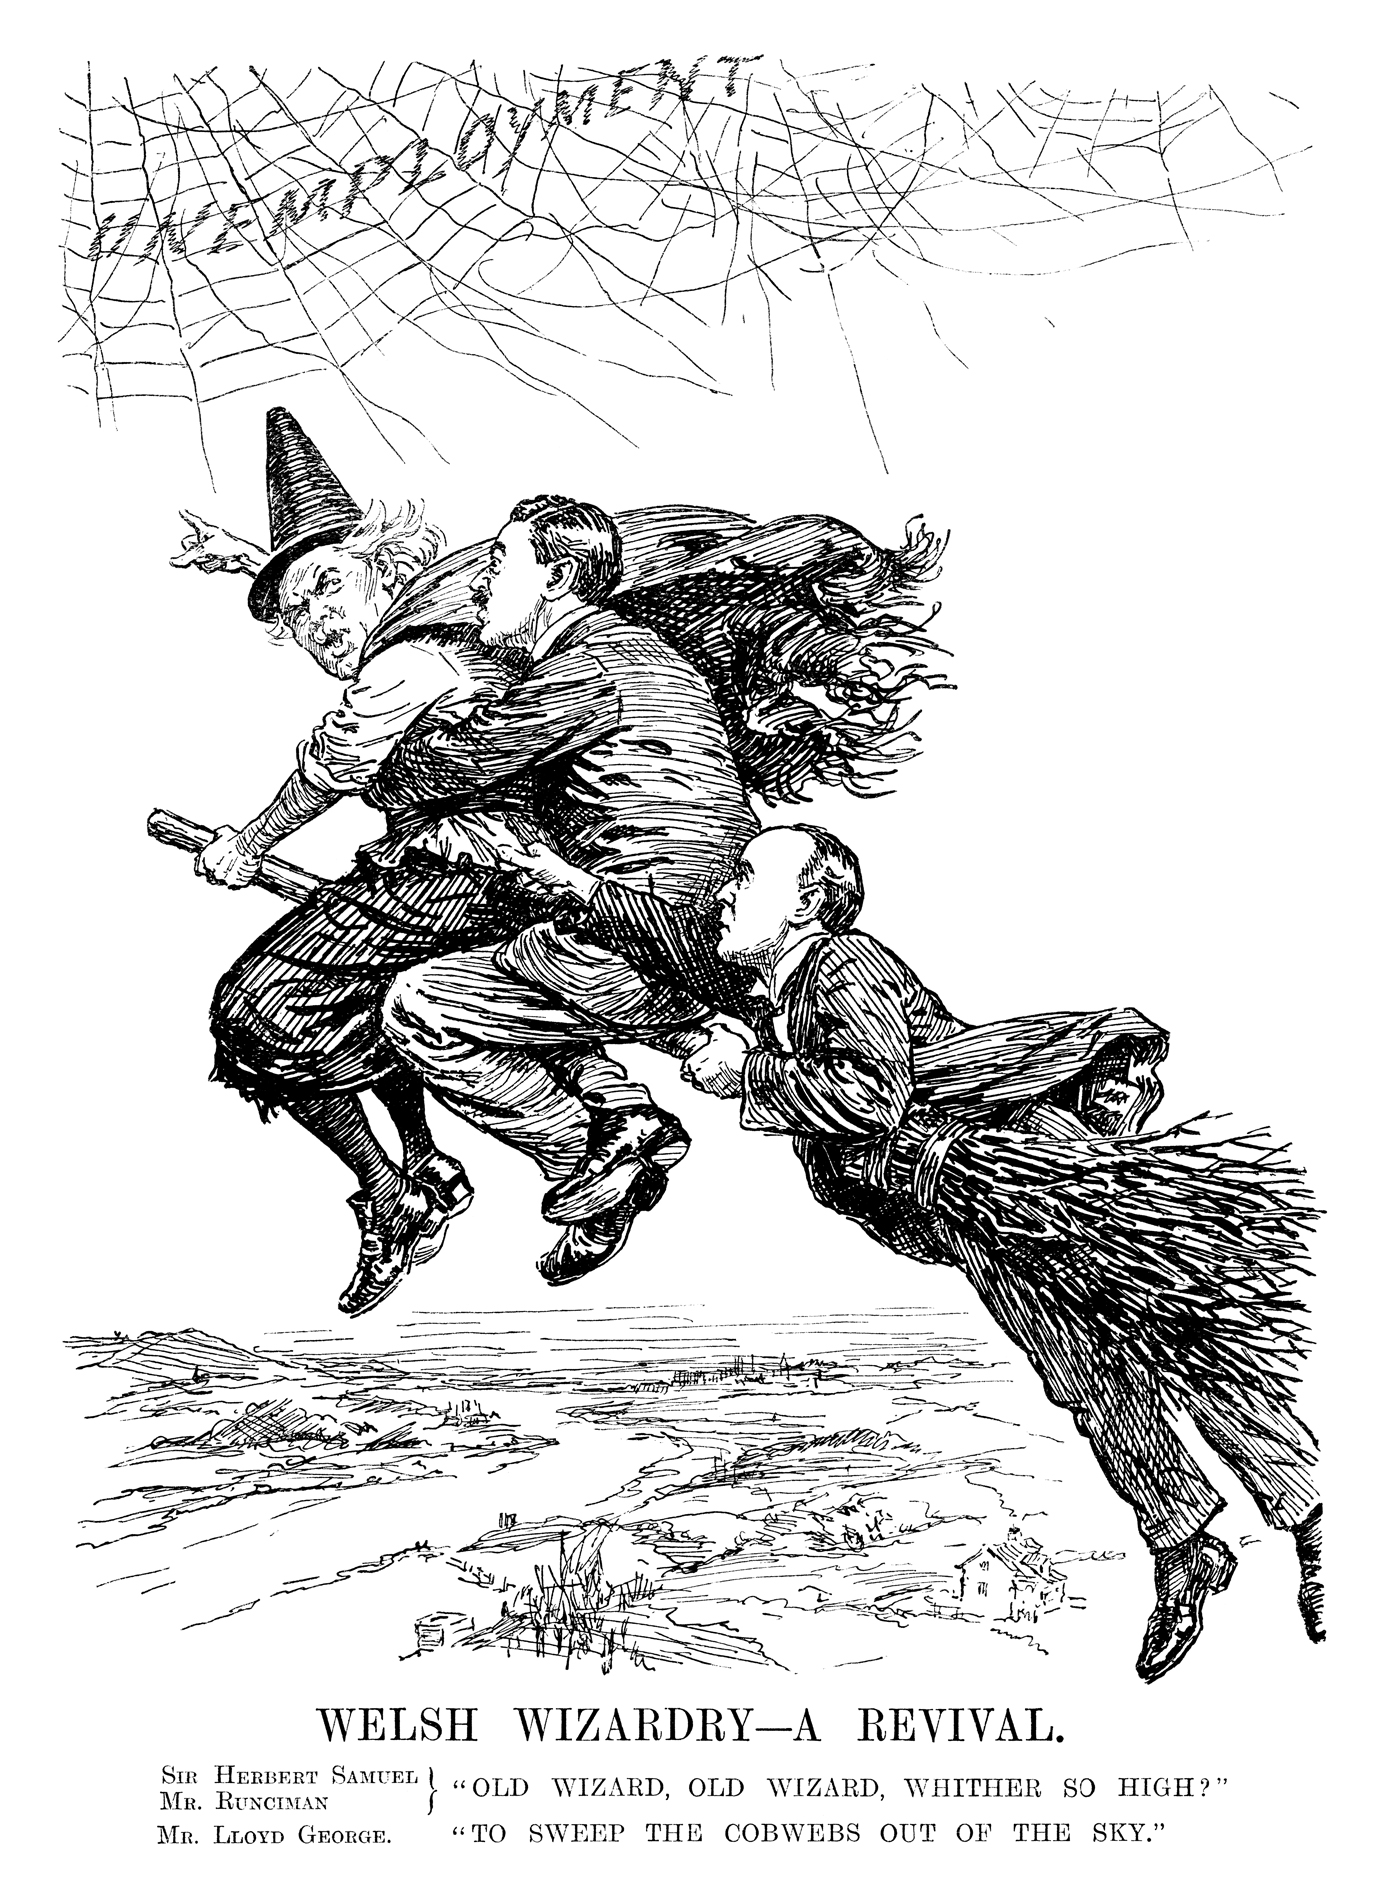 "Welsh Wizardry - A Revival. Sir Herbert Samuel, Mr Runciman} ""Old wizard, old wizard, whither so high?"" Mr Lloyd George. ""To sweep the cobwebs out of the sky."" © Punch Ltd"